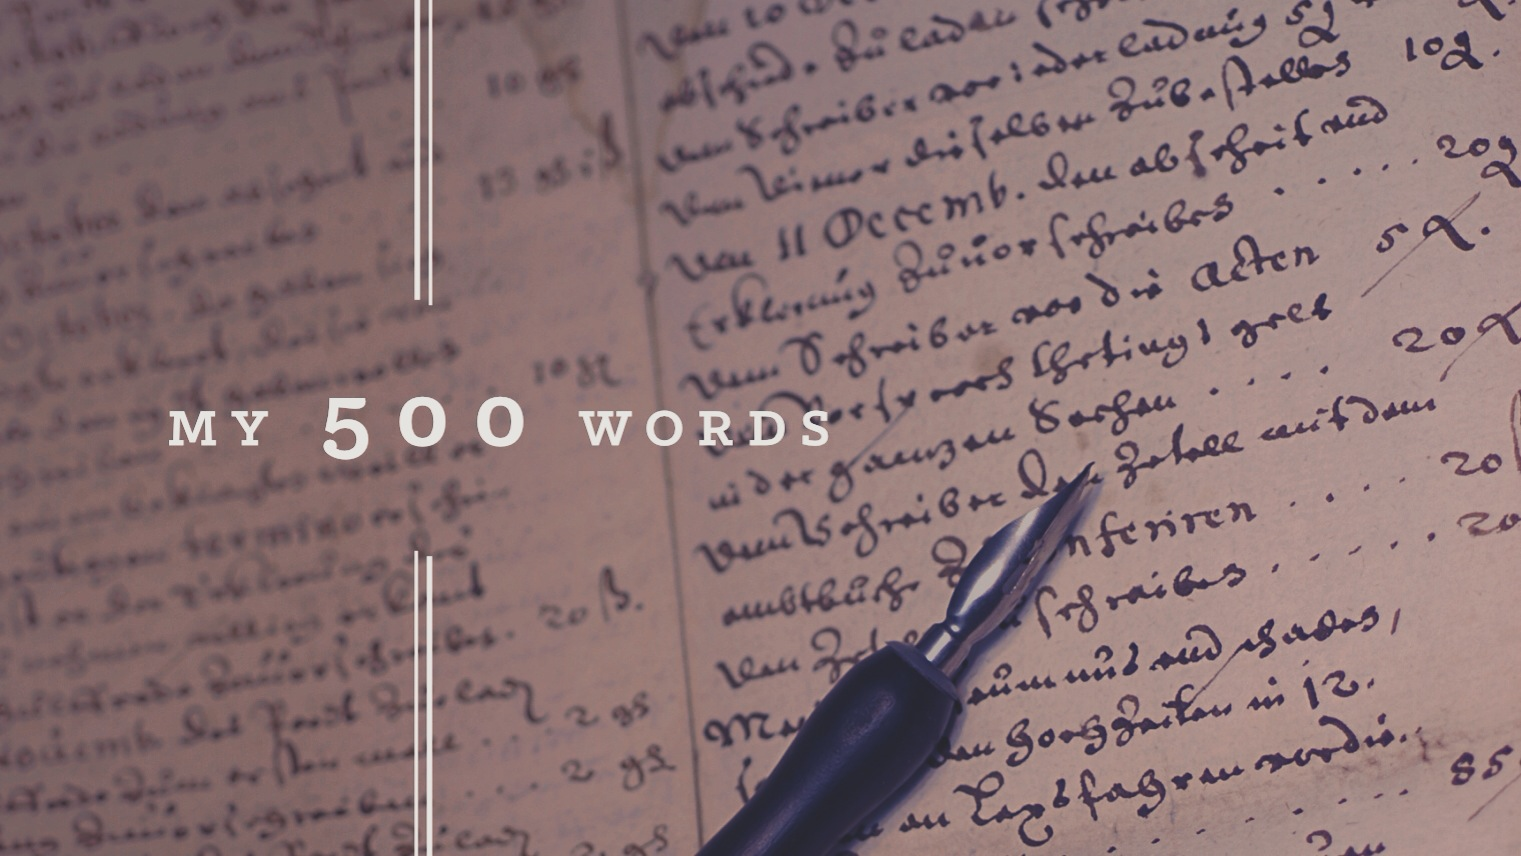 words my 500 words